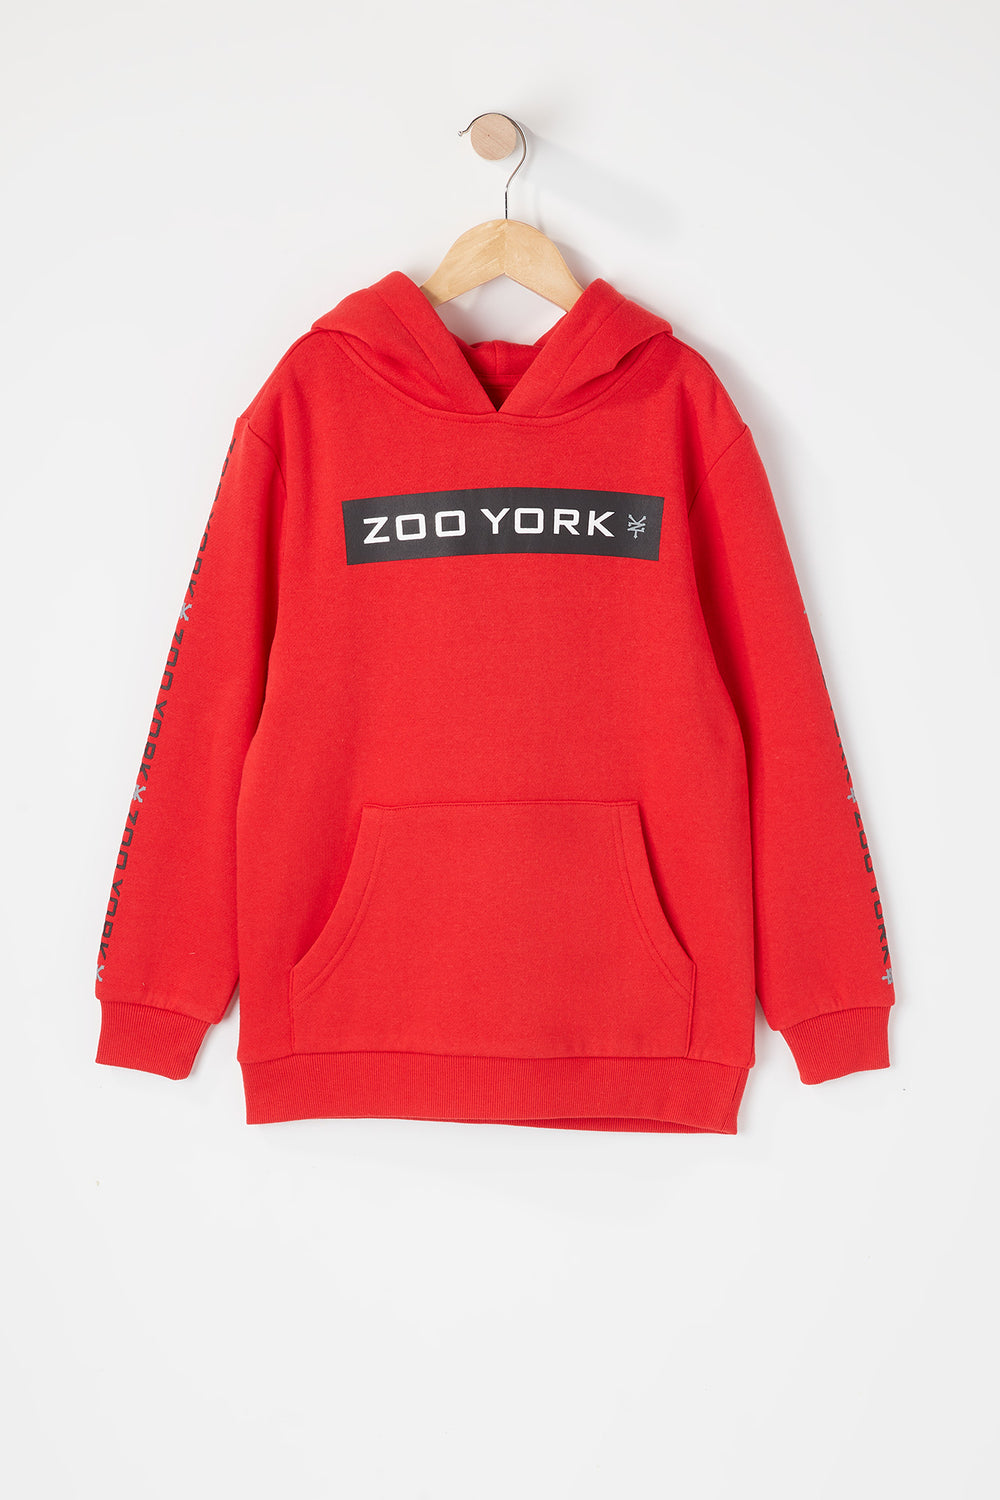 Zoo York Youth Box Logo Popover Hoodie Red